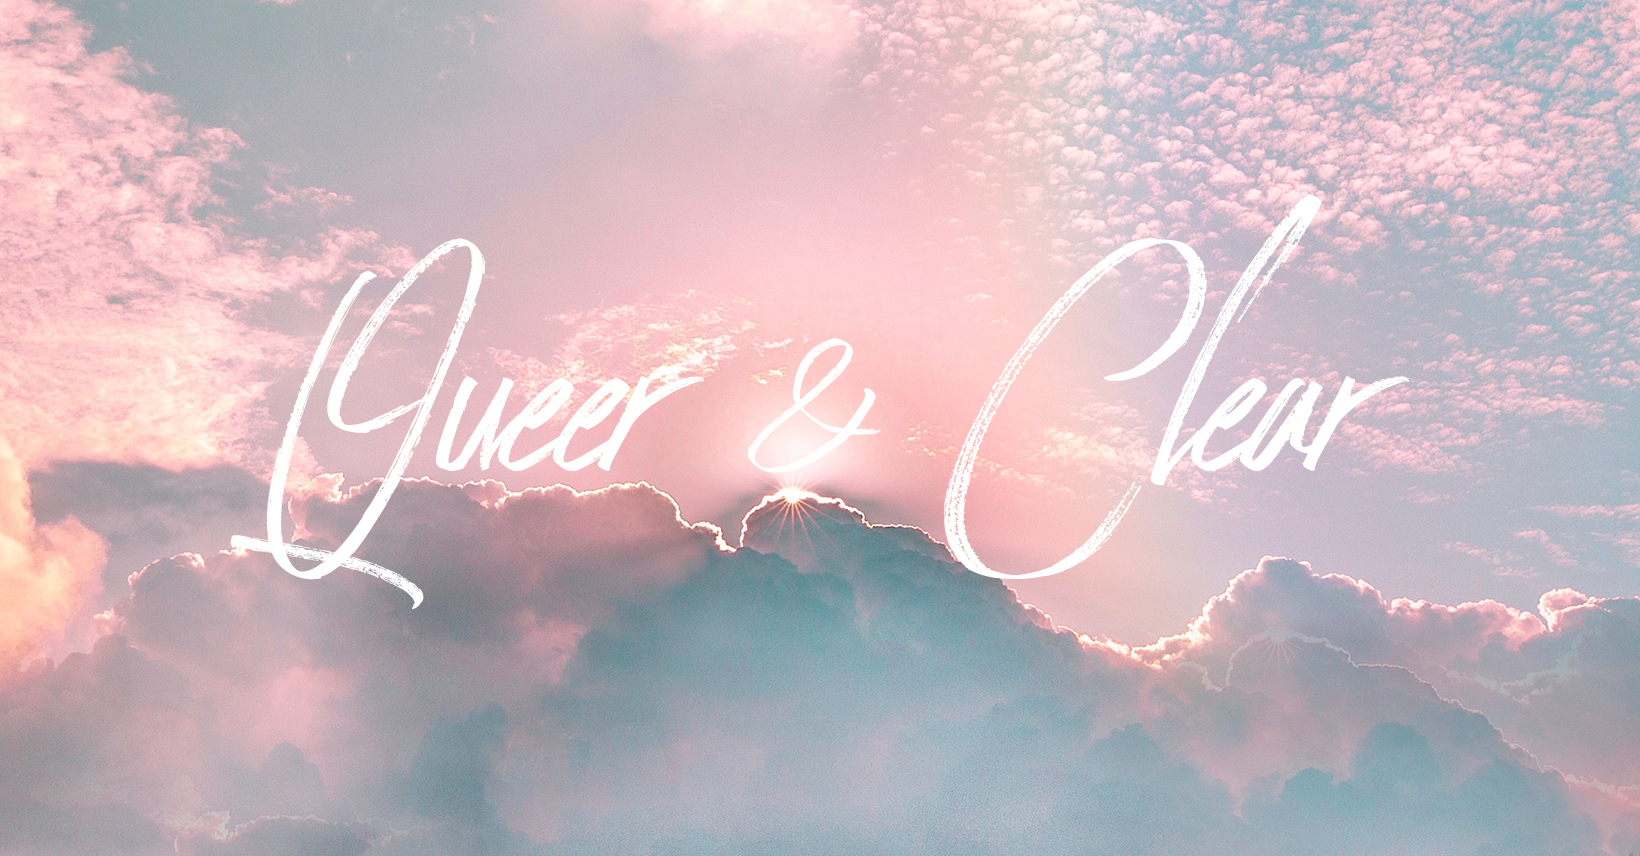 Queer & Clear